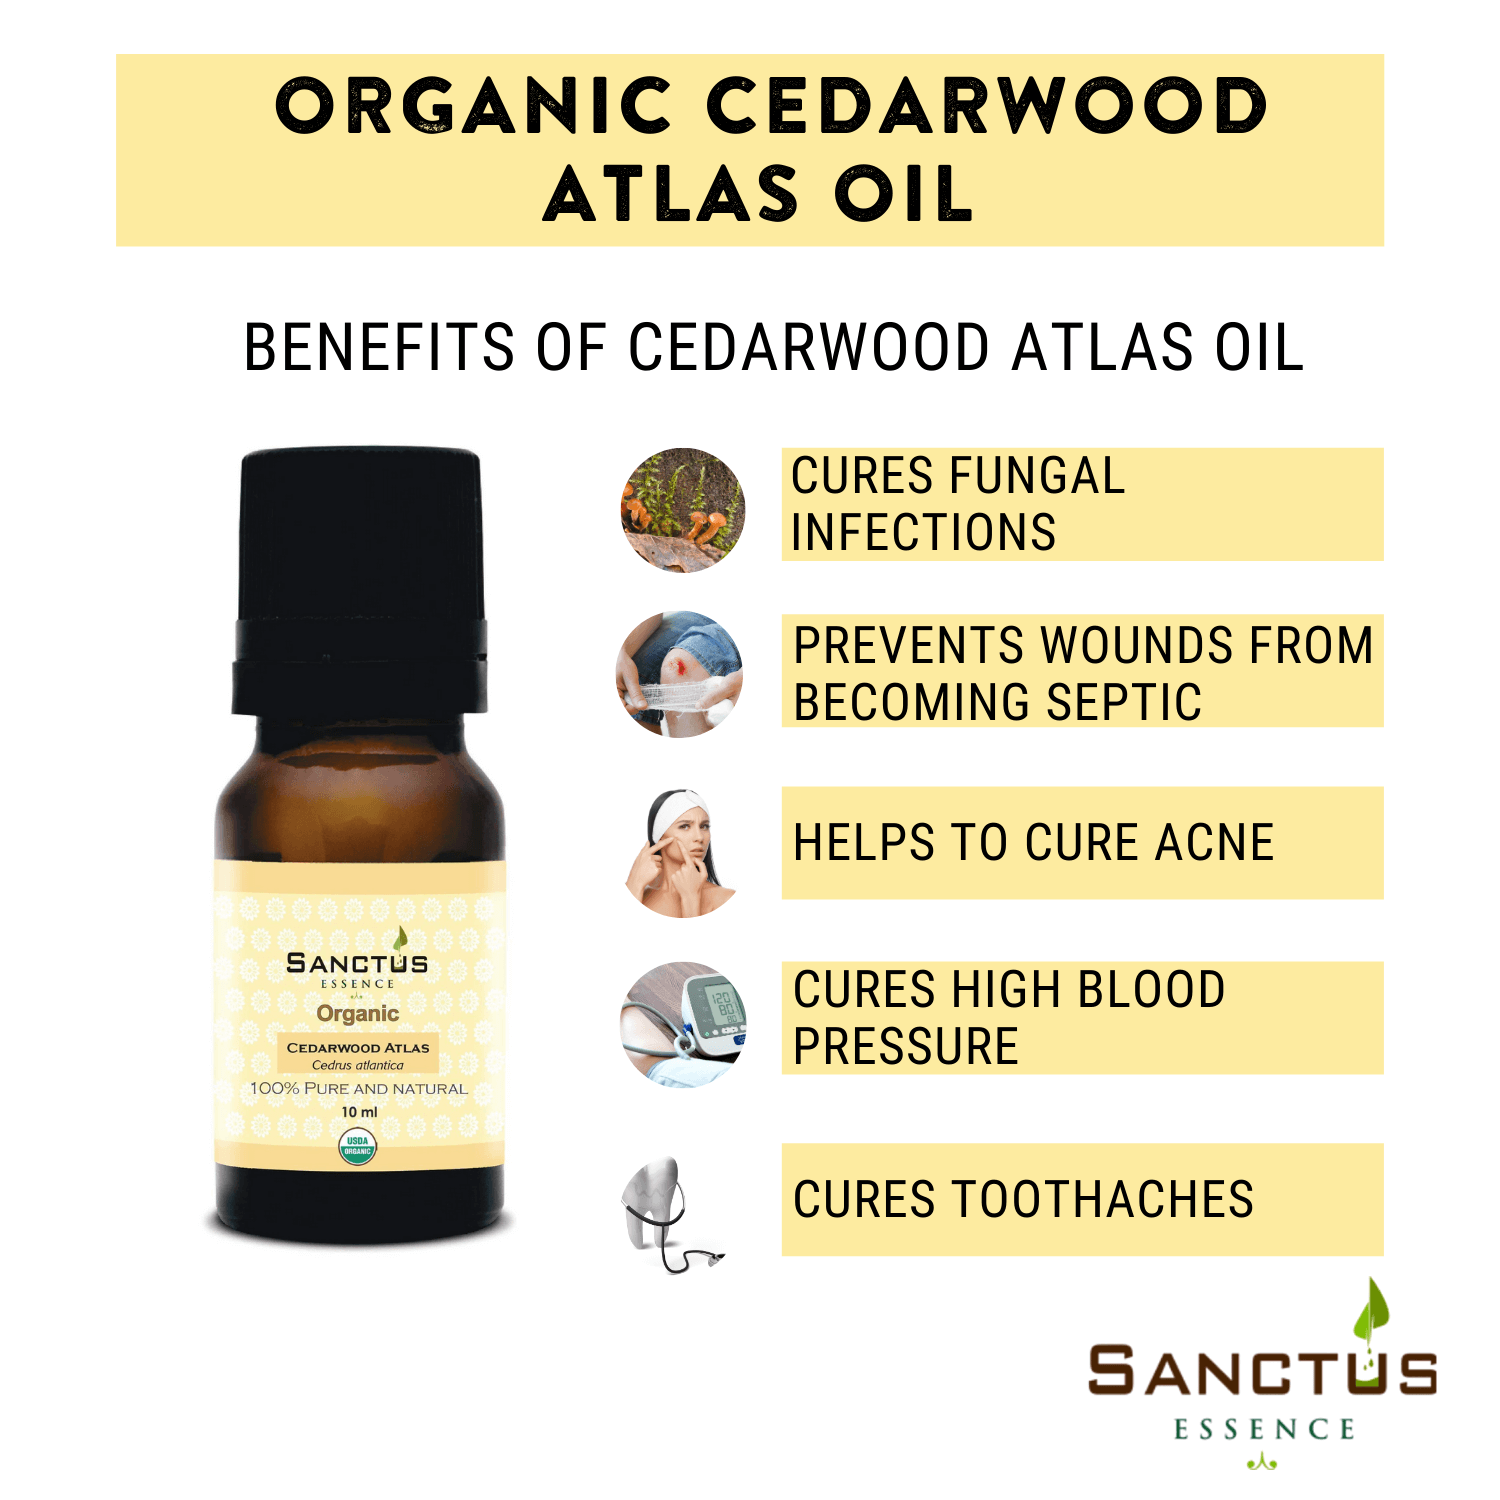 Organic Cedarwood Atlas Oil